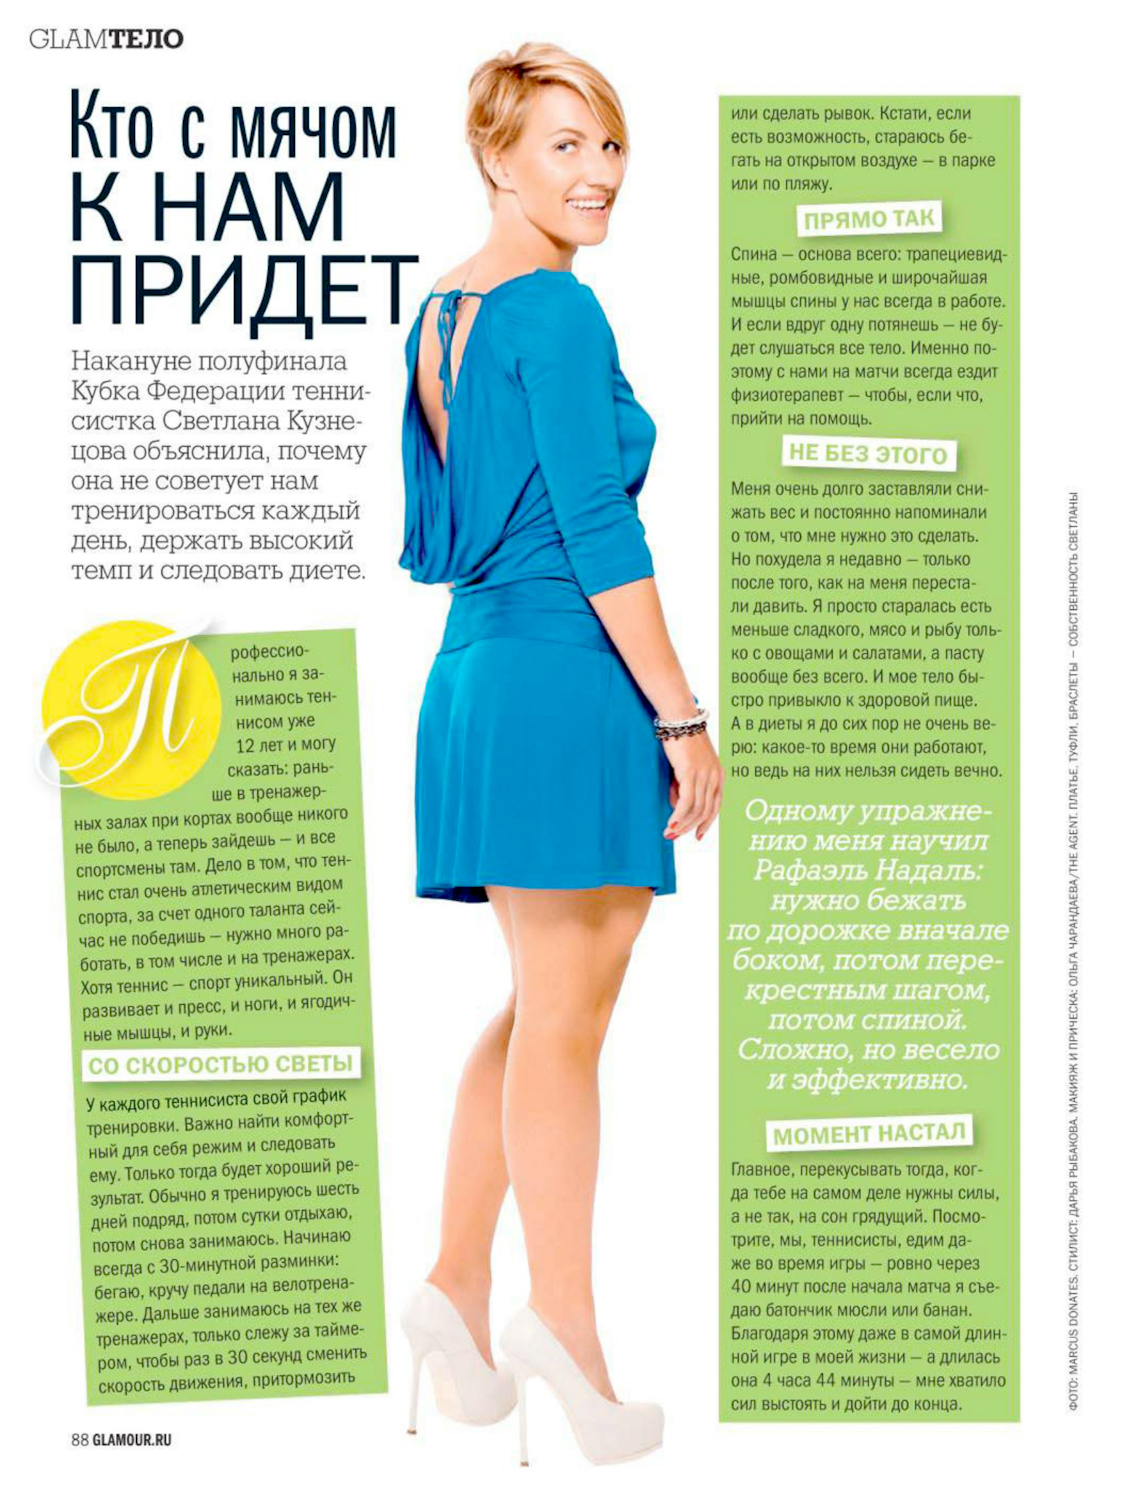 Pages from Glamur412_Uboino.Ru_Jurnalik_F